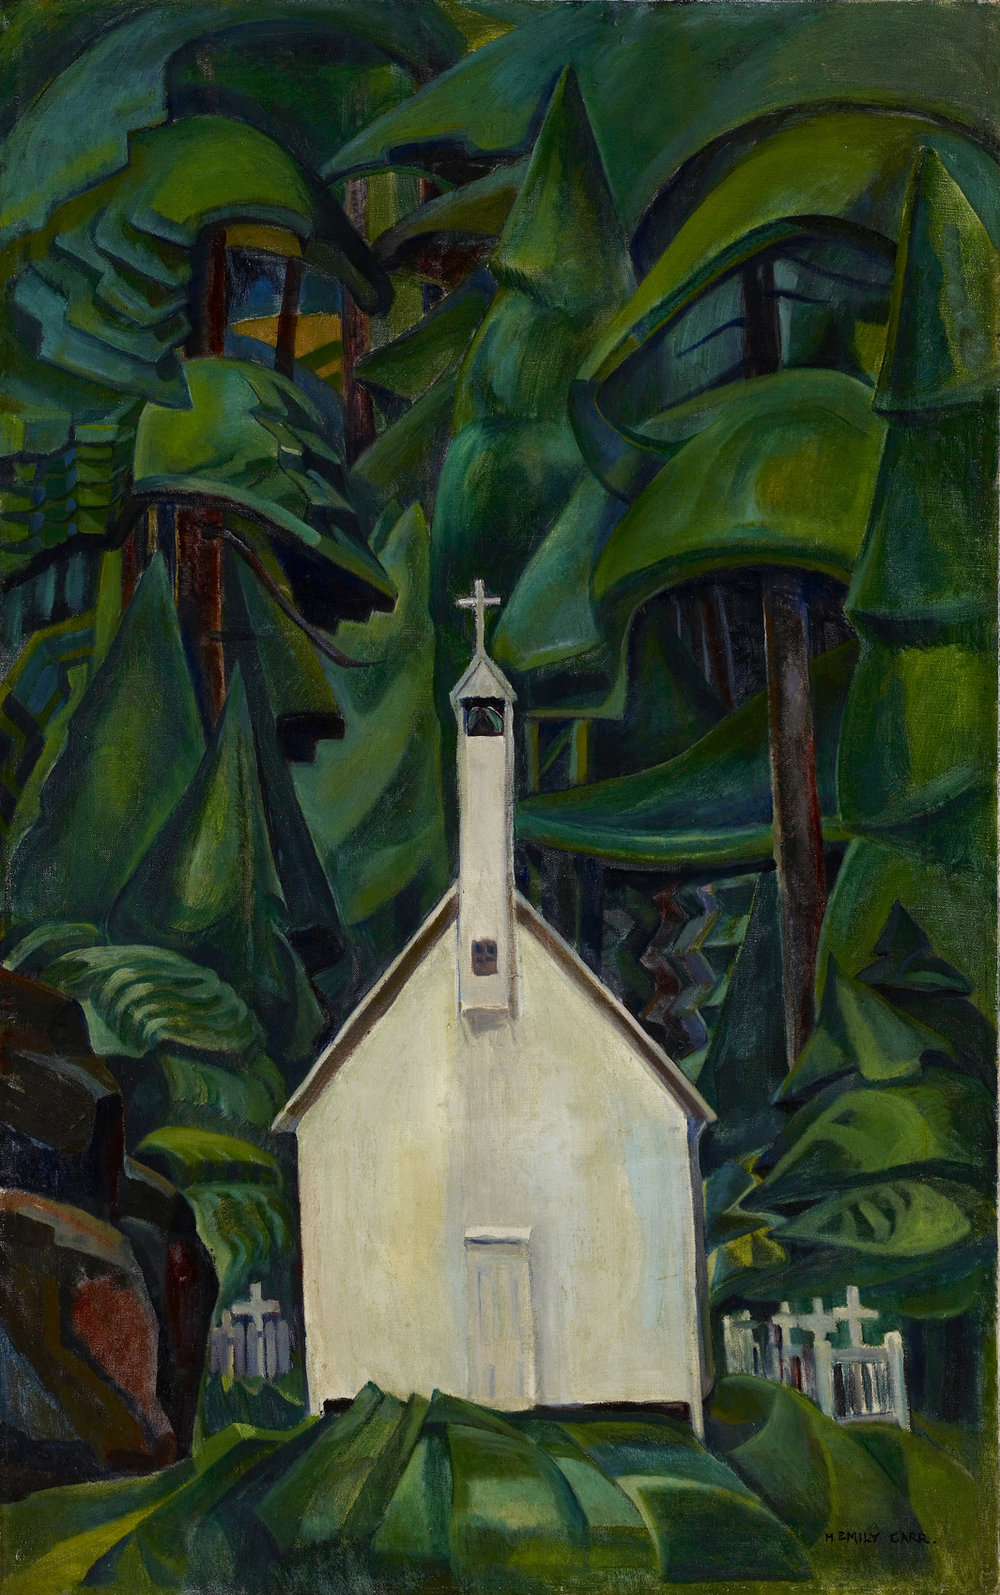 Emily Carr Indian Church, 1929 108.6 x 68.9 cm Oil on canvas